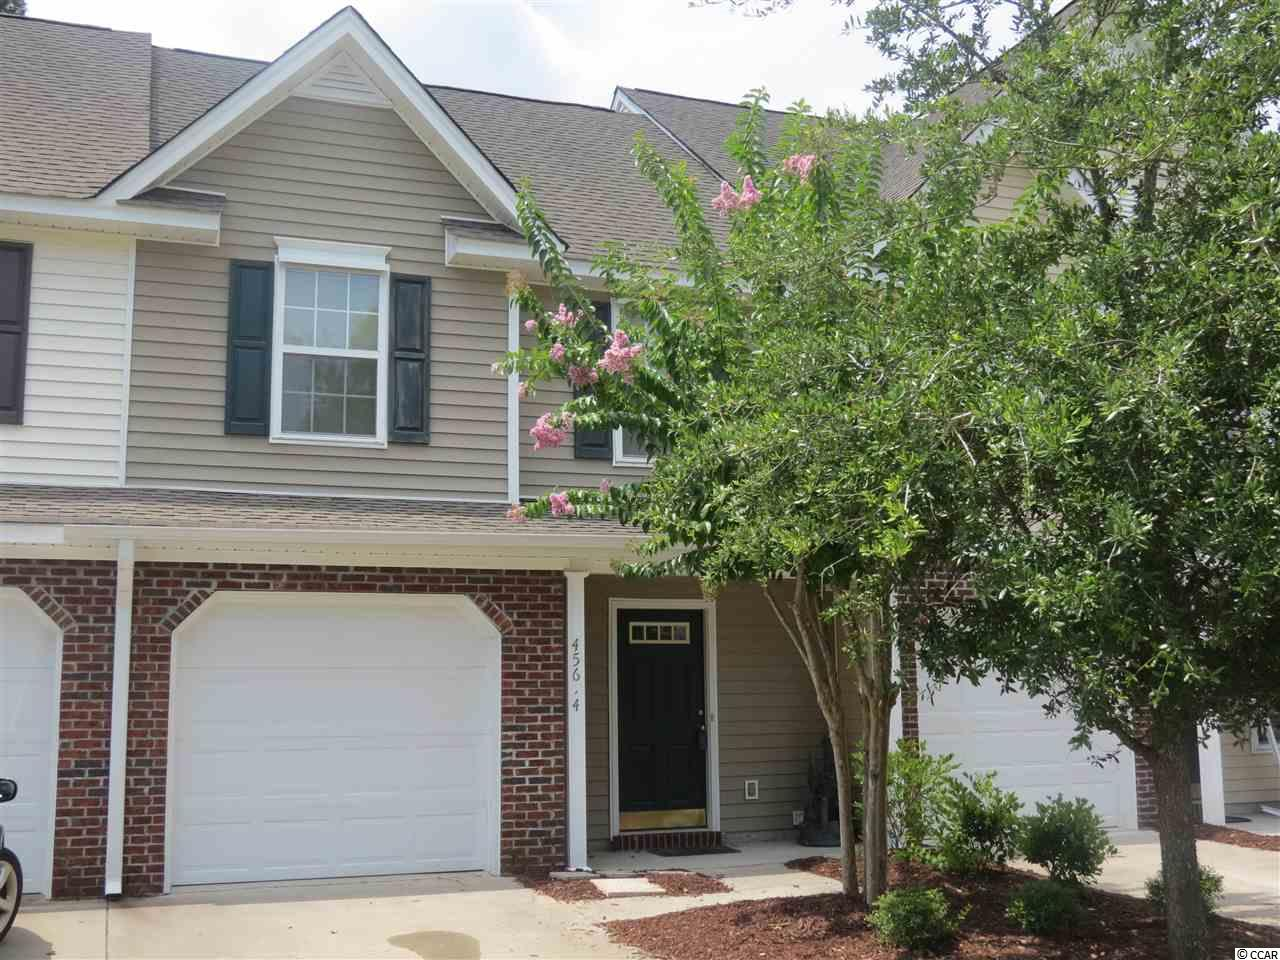 Townhouse MLS:1804239 ROSE RUN  456-4 Red Rose Blvd Pawleys Island SC